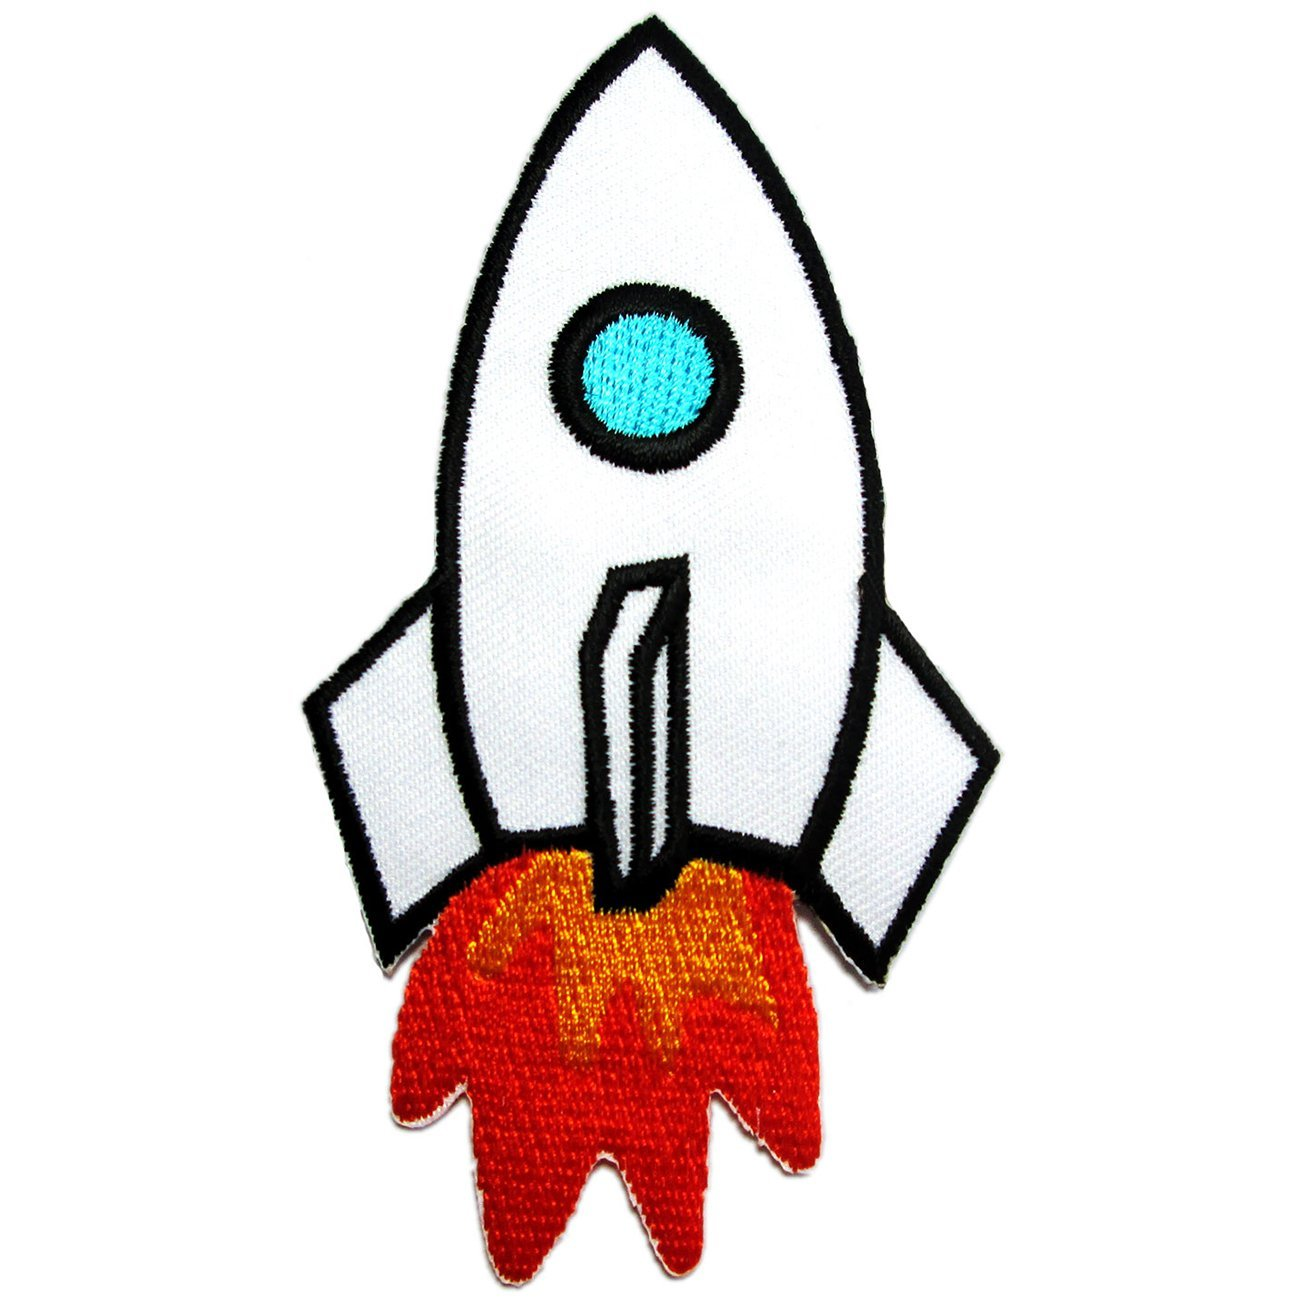 1300x1300 Iron On Patches Rocket For Kids